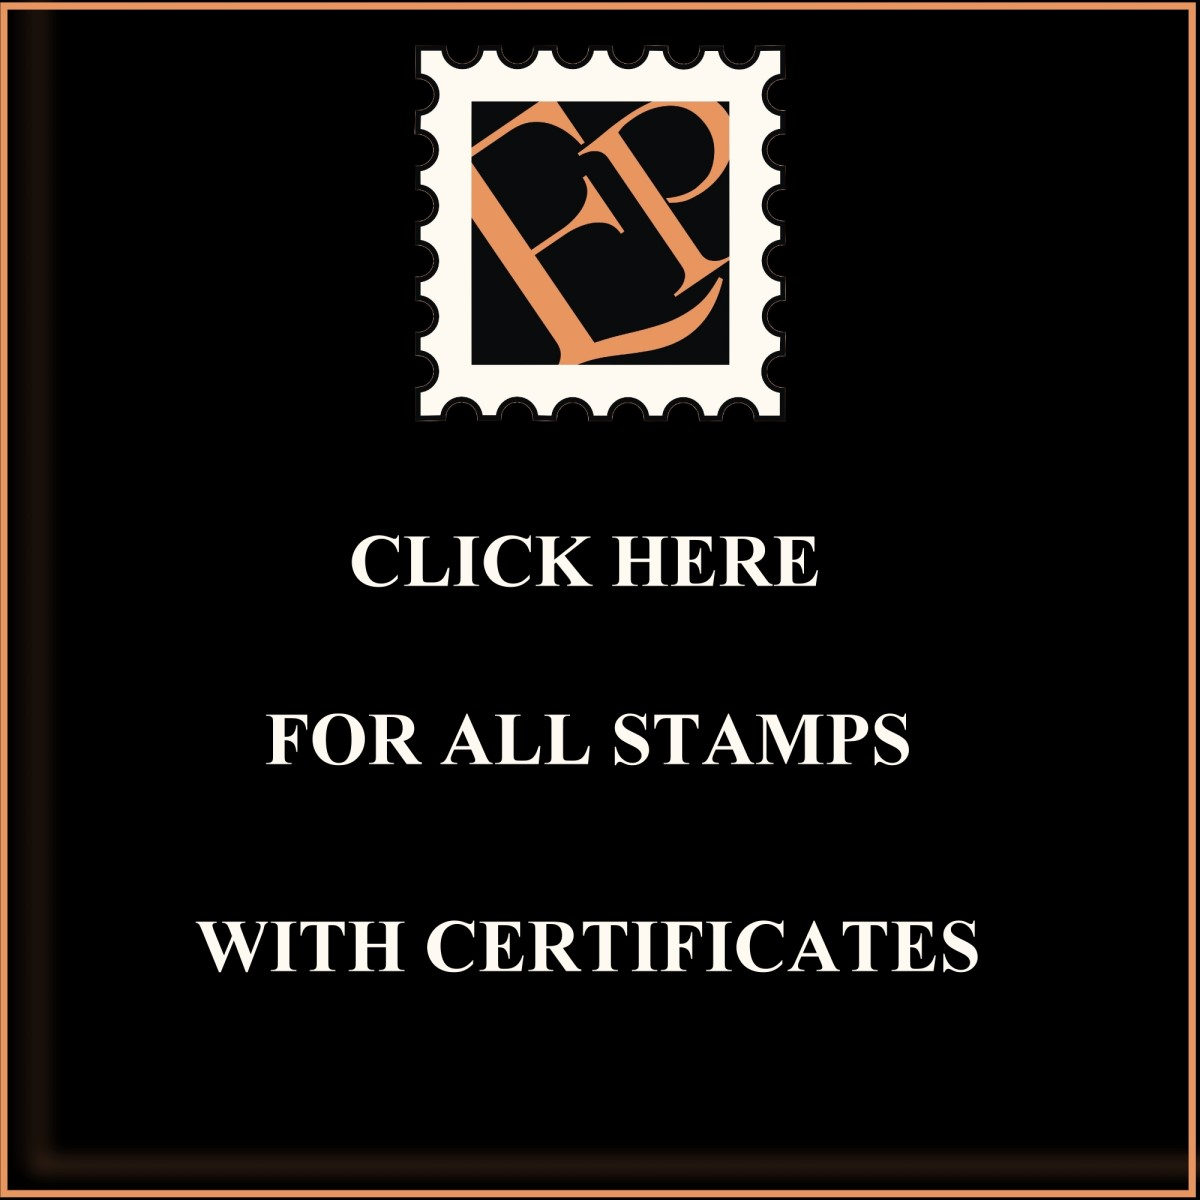 Stamps with Certificates